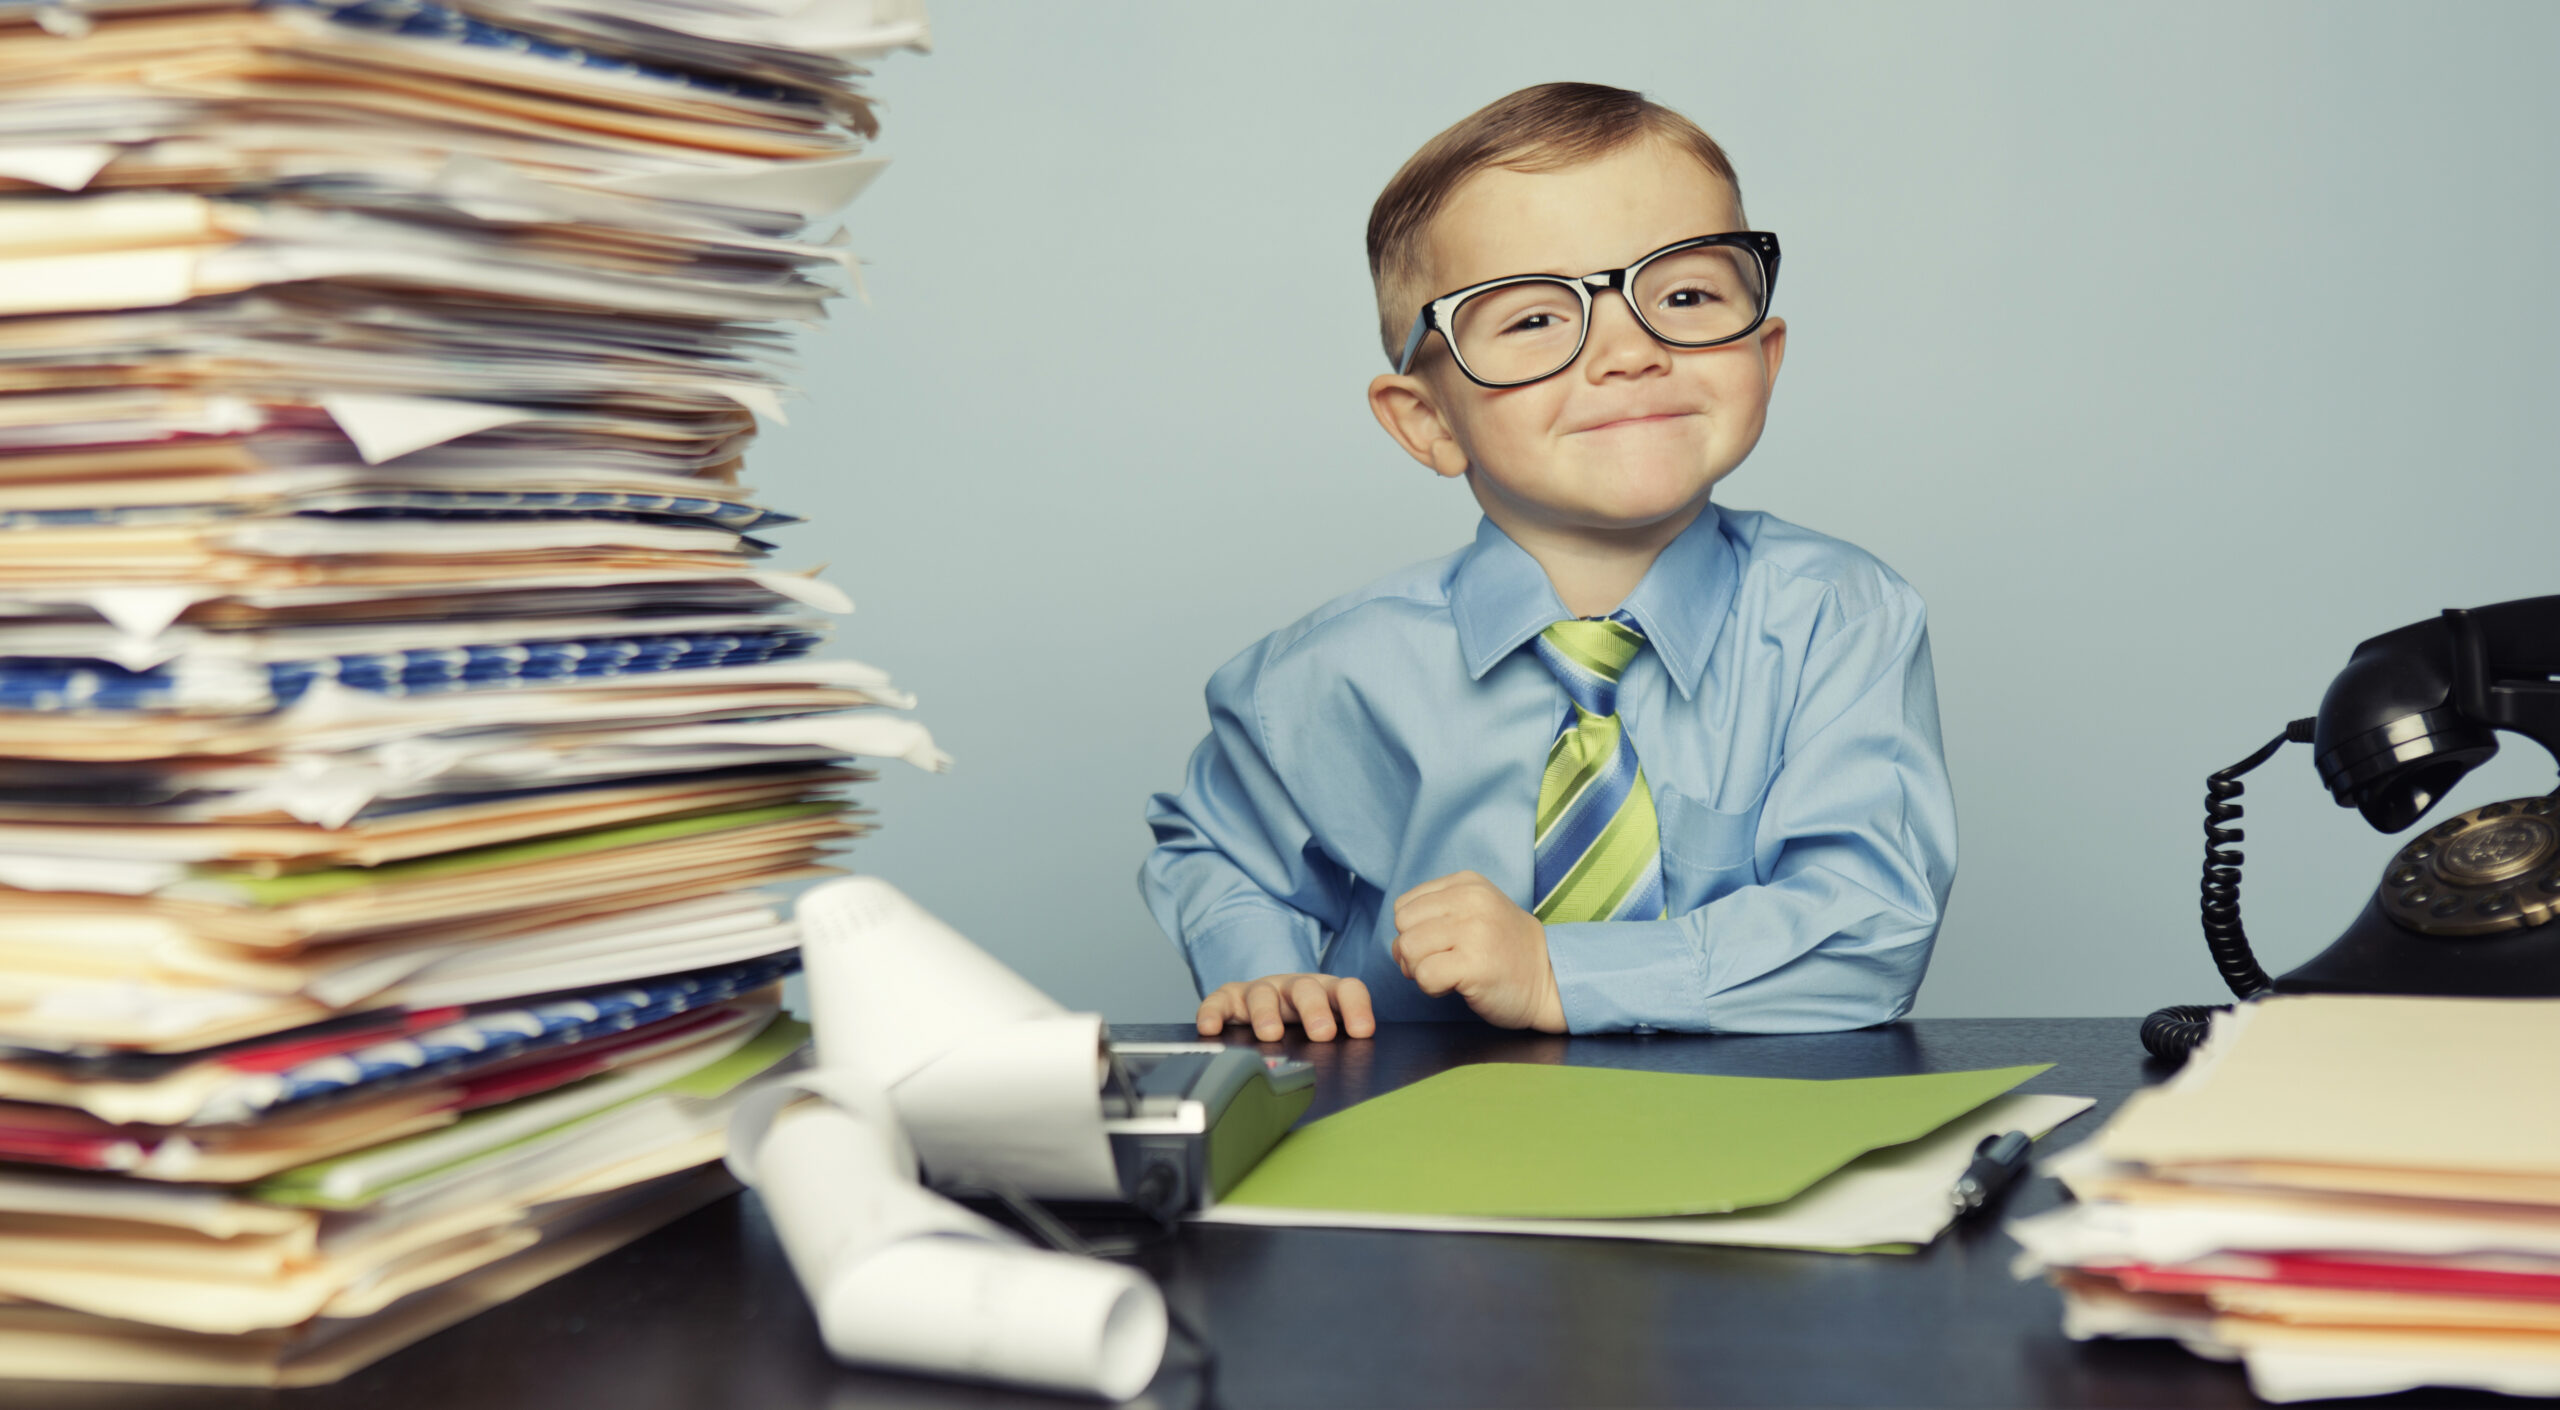 A young boy accountant is ready to crunch your numbers this tax season.